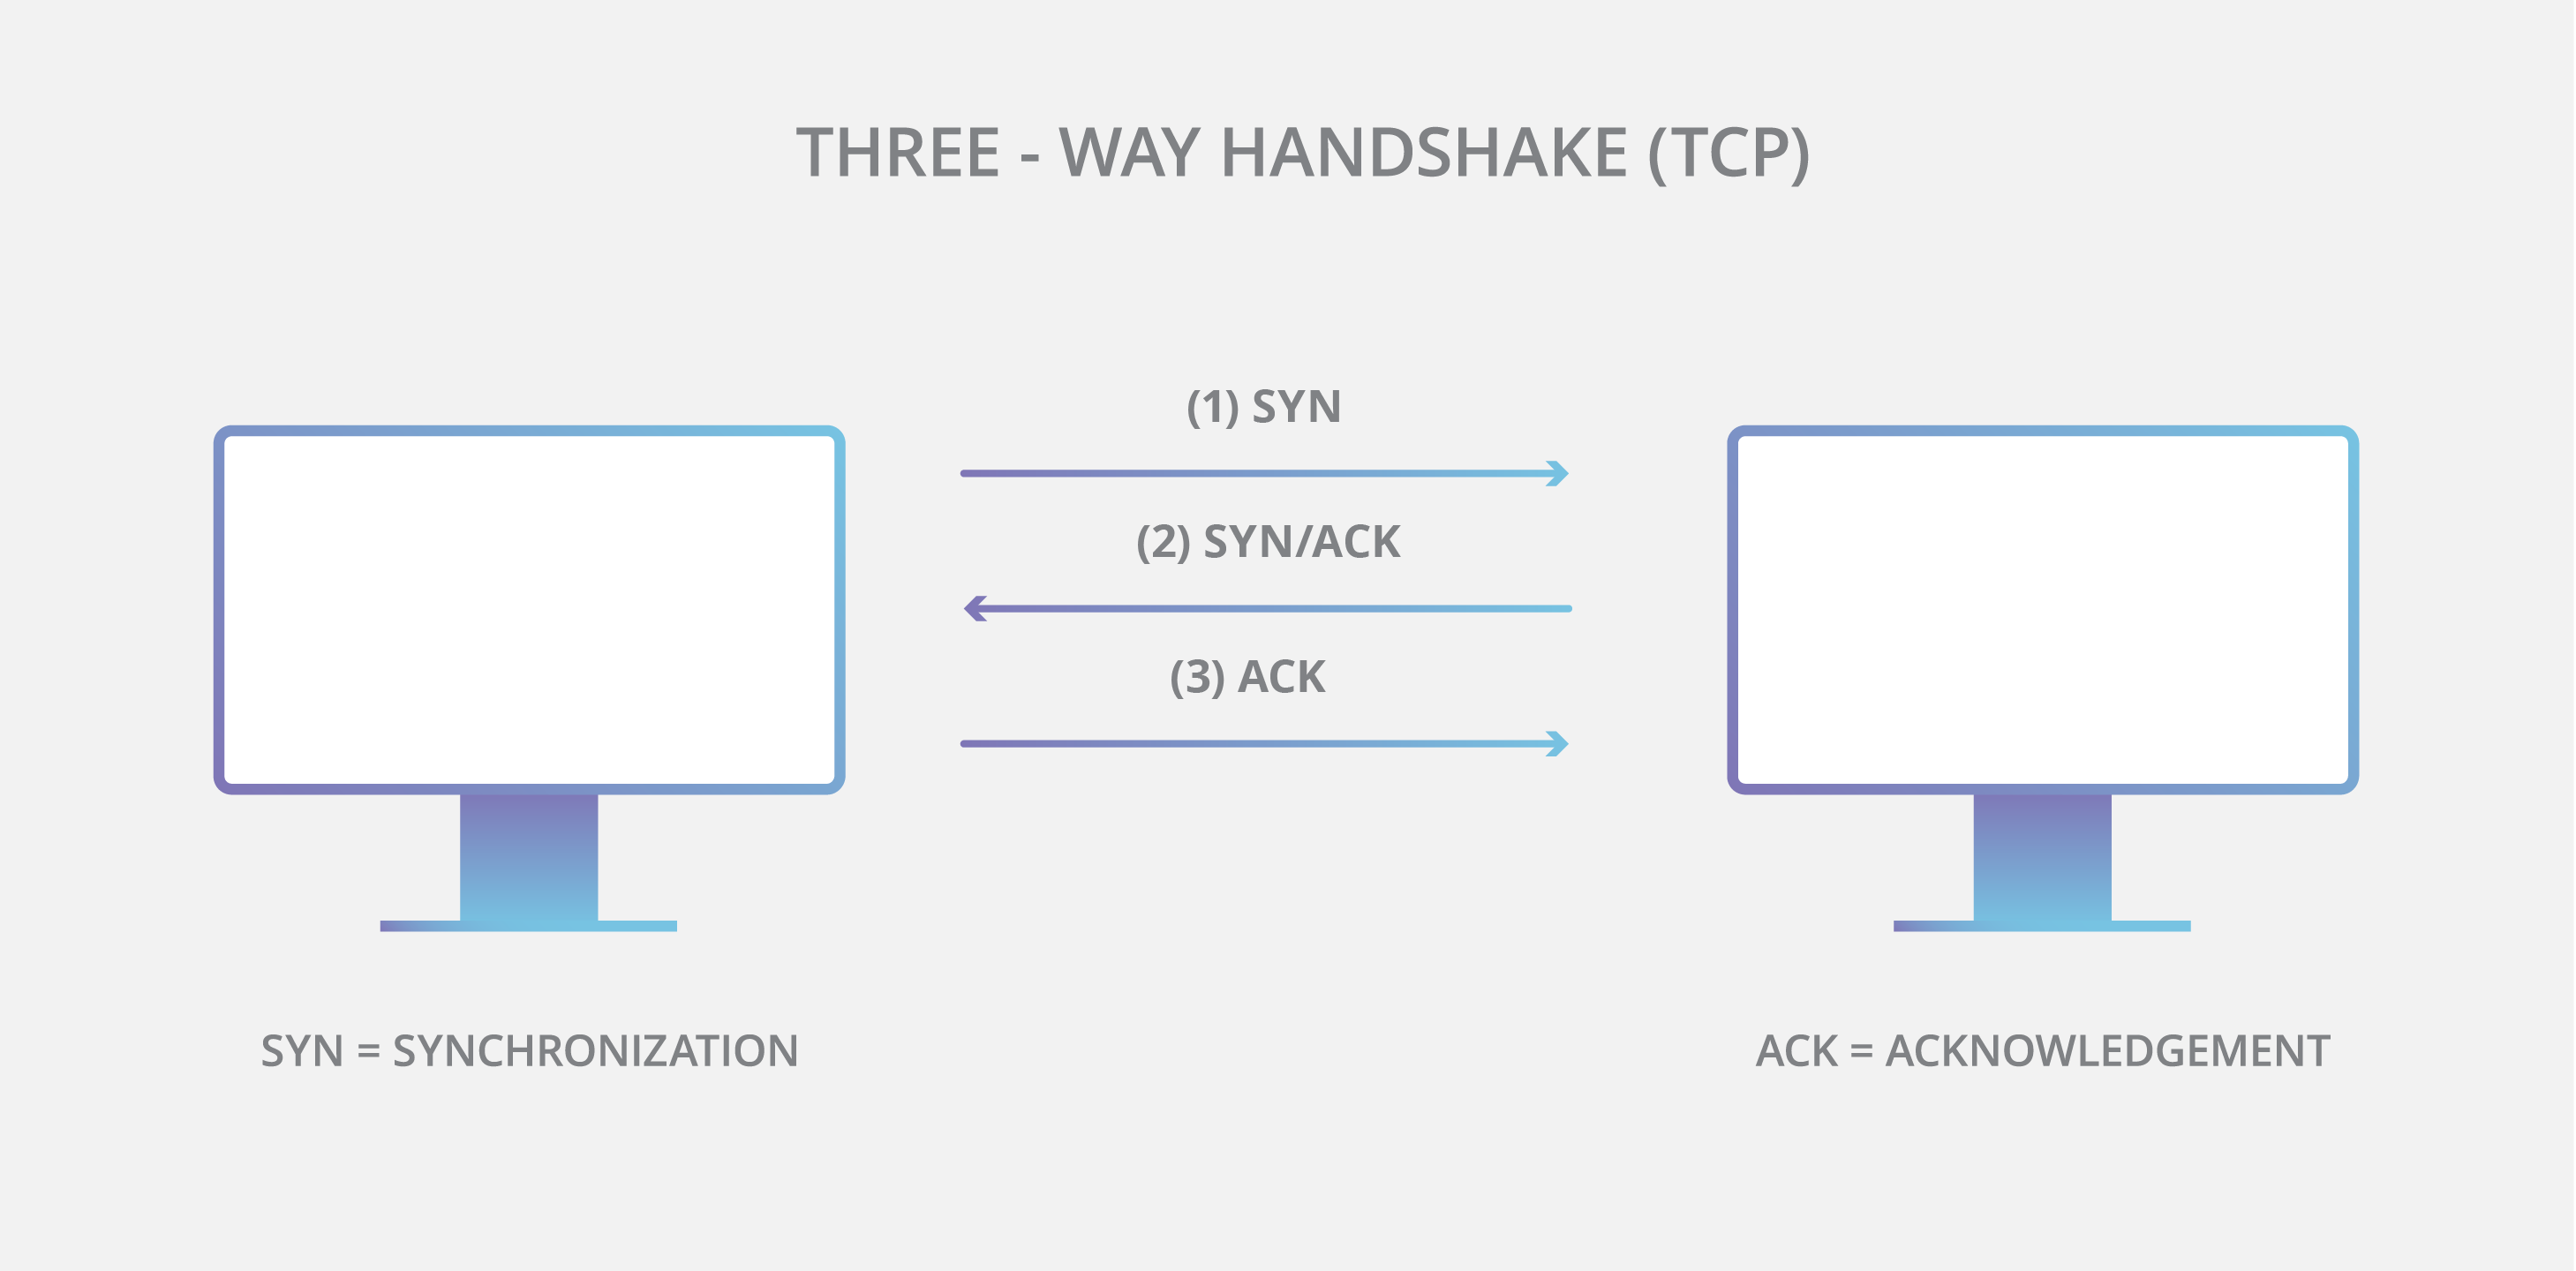 TCP 3-way handshake diagram